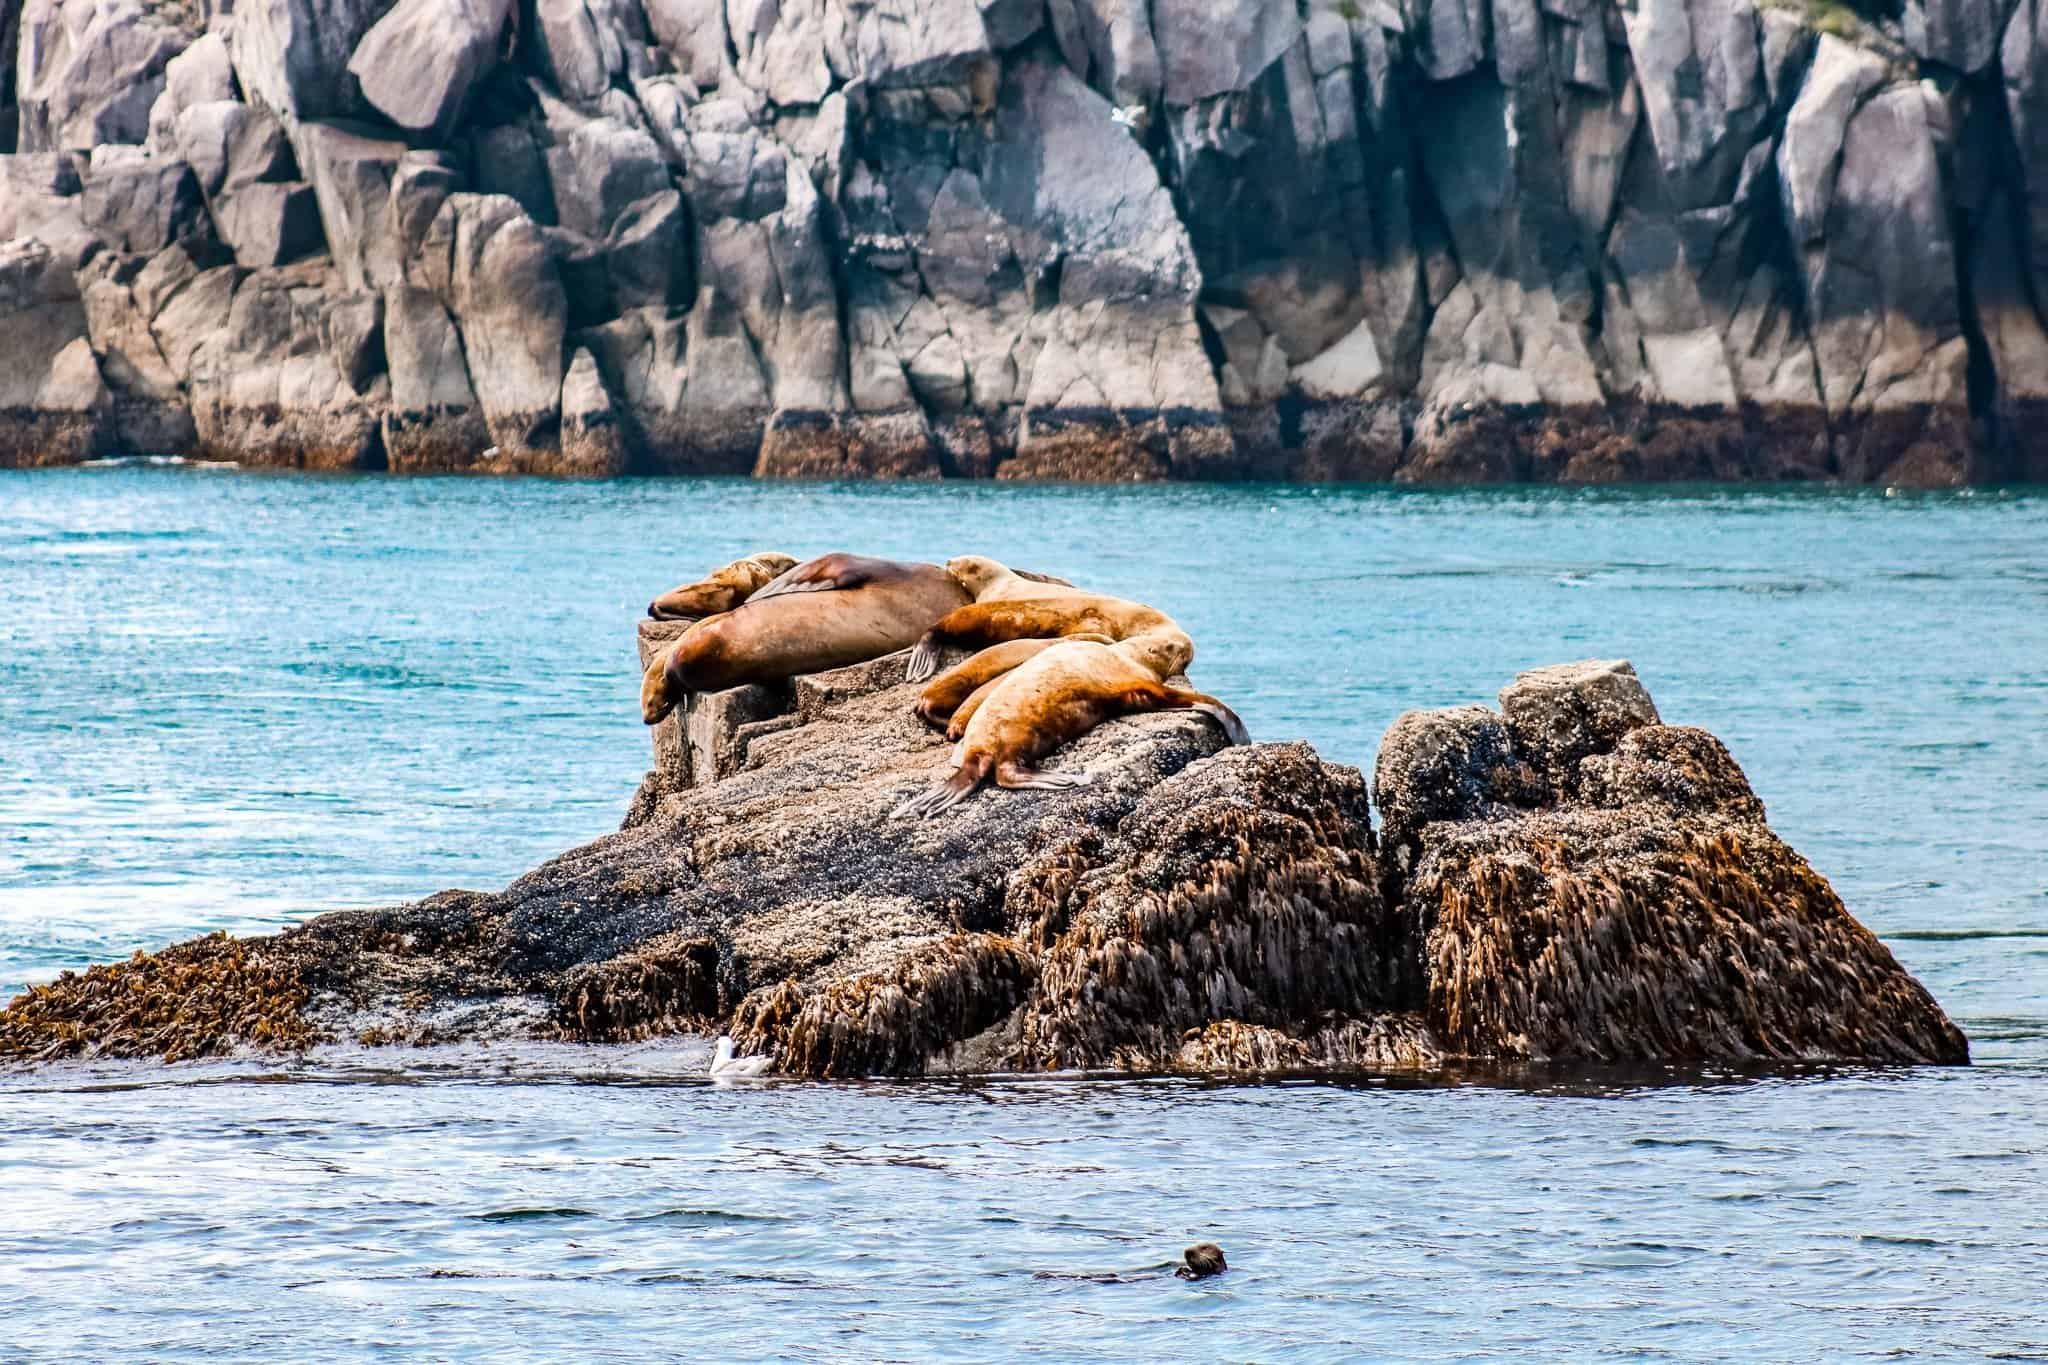 Sea Lions and Otter on Pursuit Collection Cruise Kenai Fjord Alaska - The Next Trip